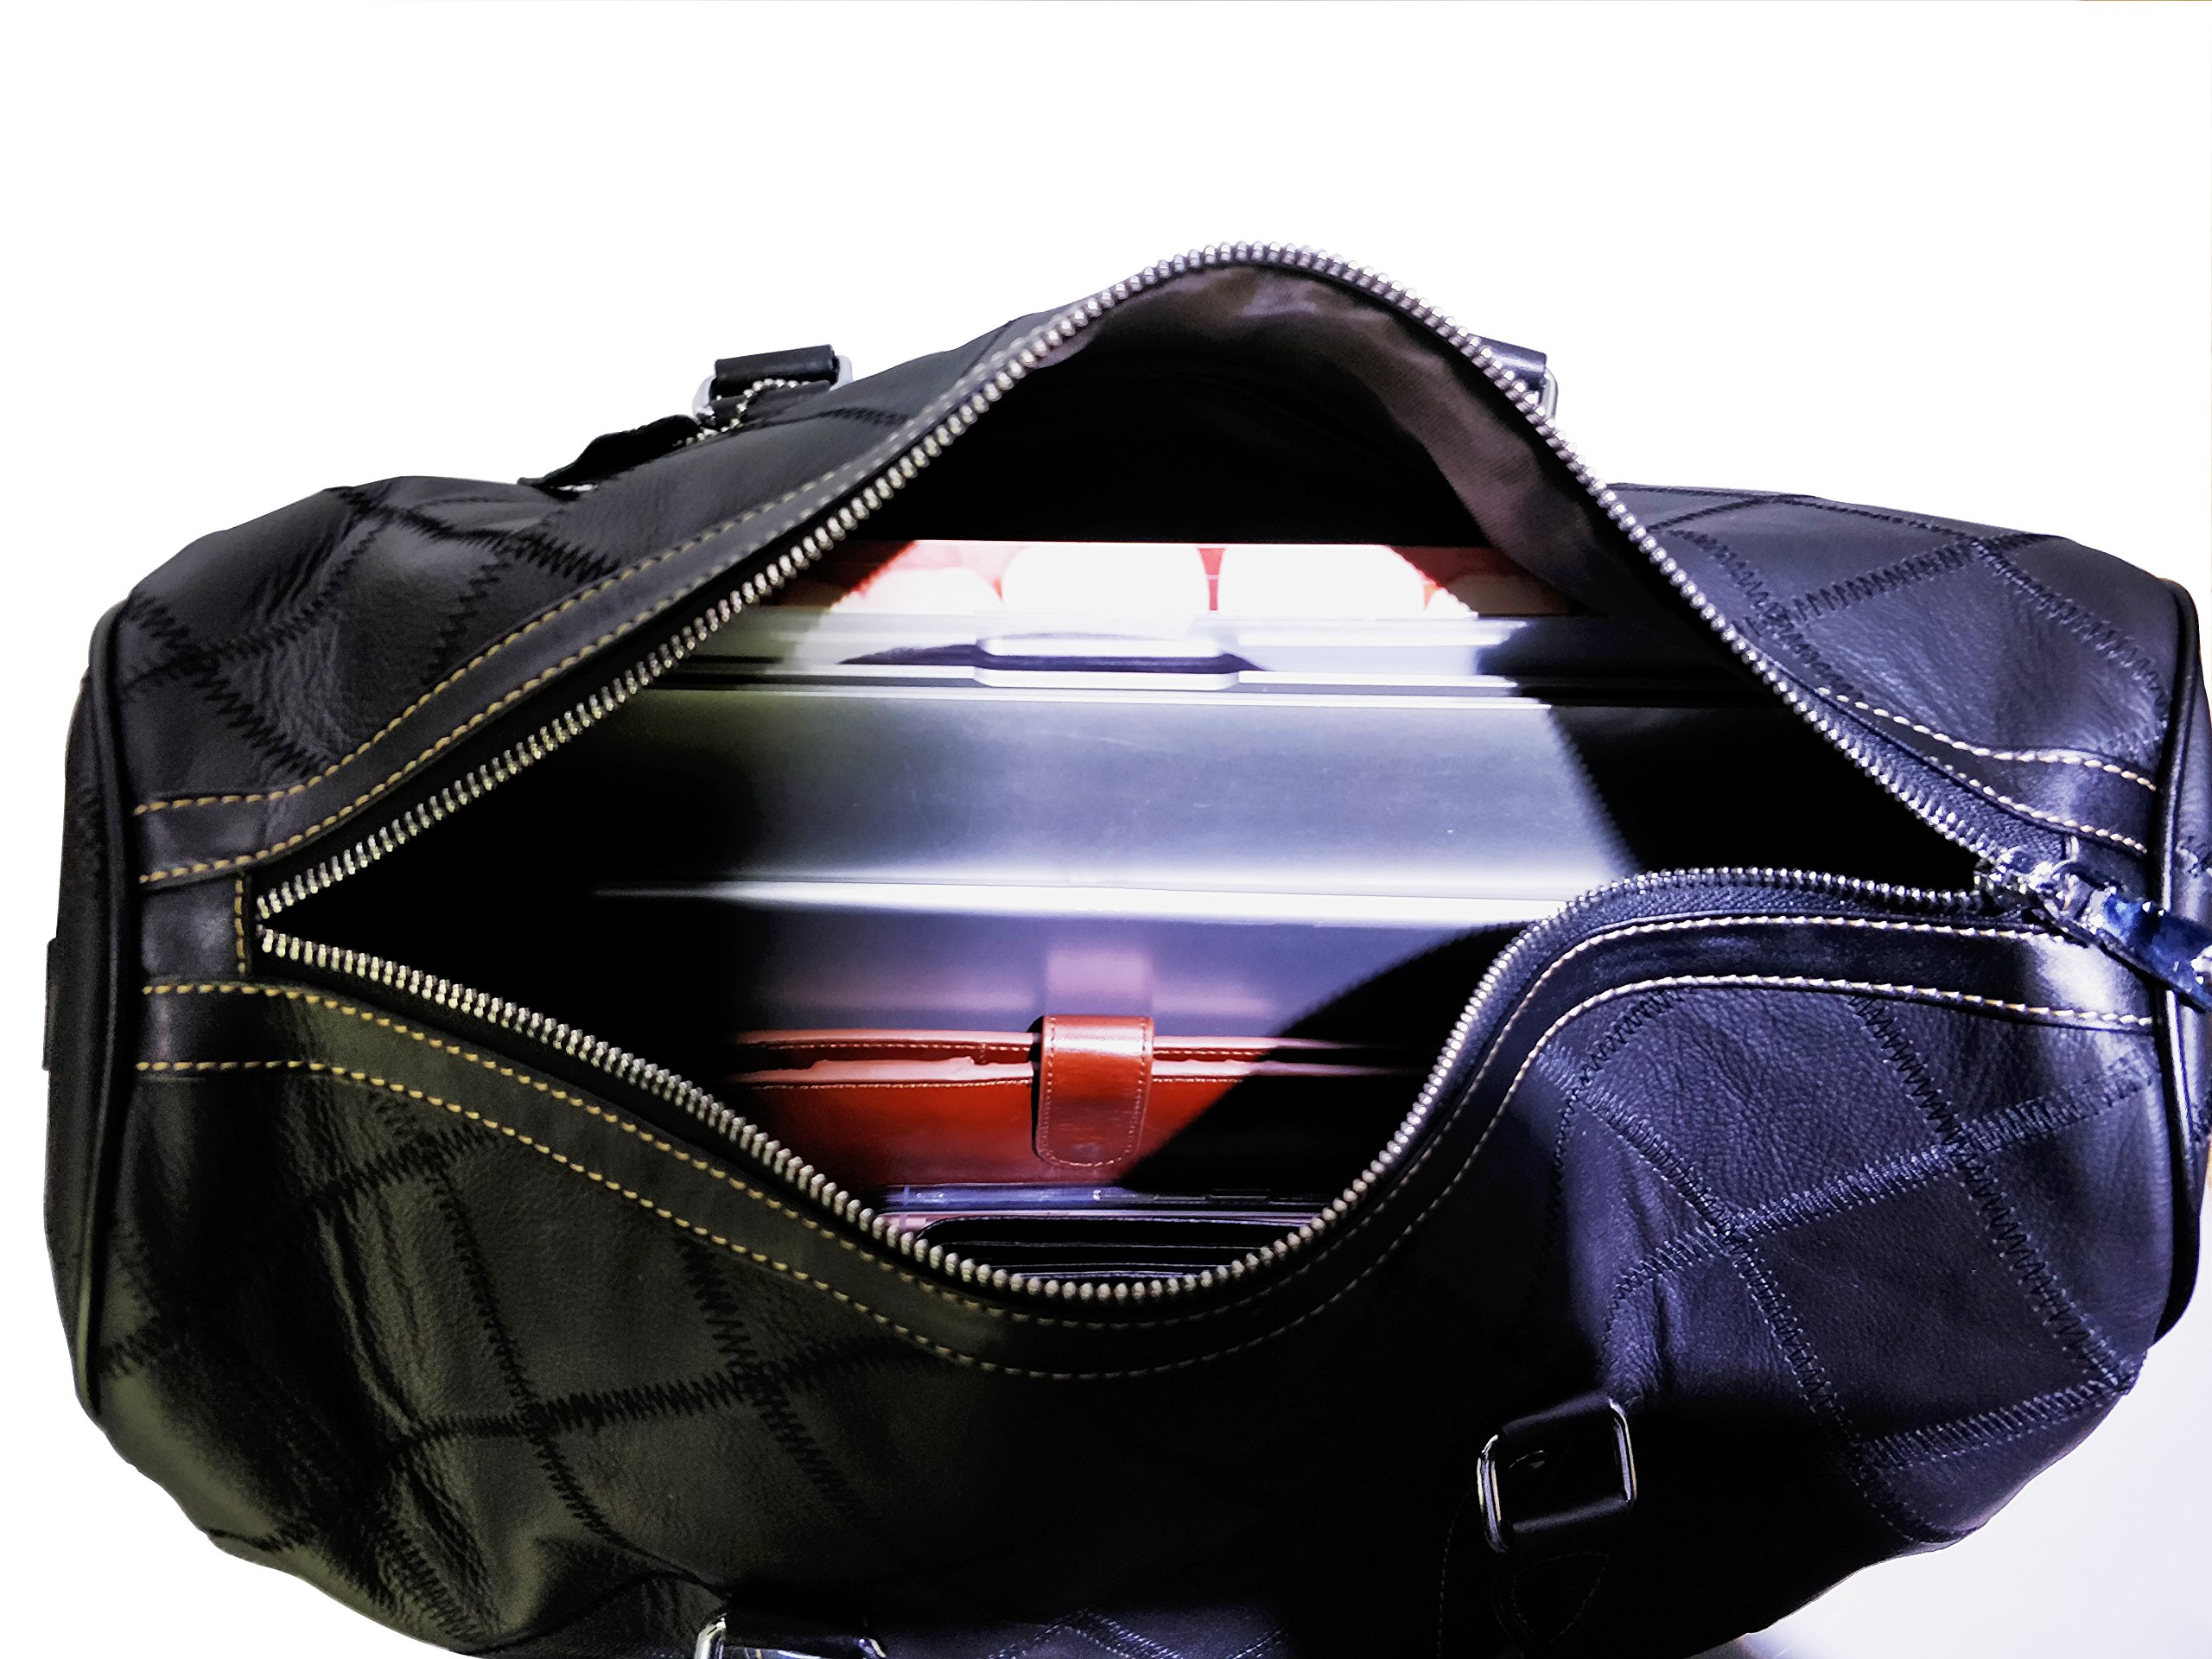 Leather Travel Duffel Bag Weekender Overnight Carry On Luggage Luxurious Vintage Leather Perfect Fit to Airplane Underseat (Black) by Gionar (Image #7)